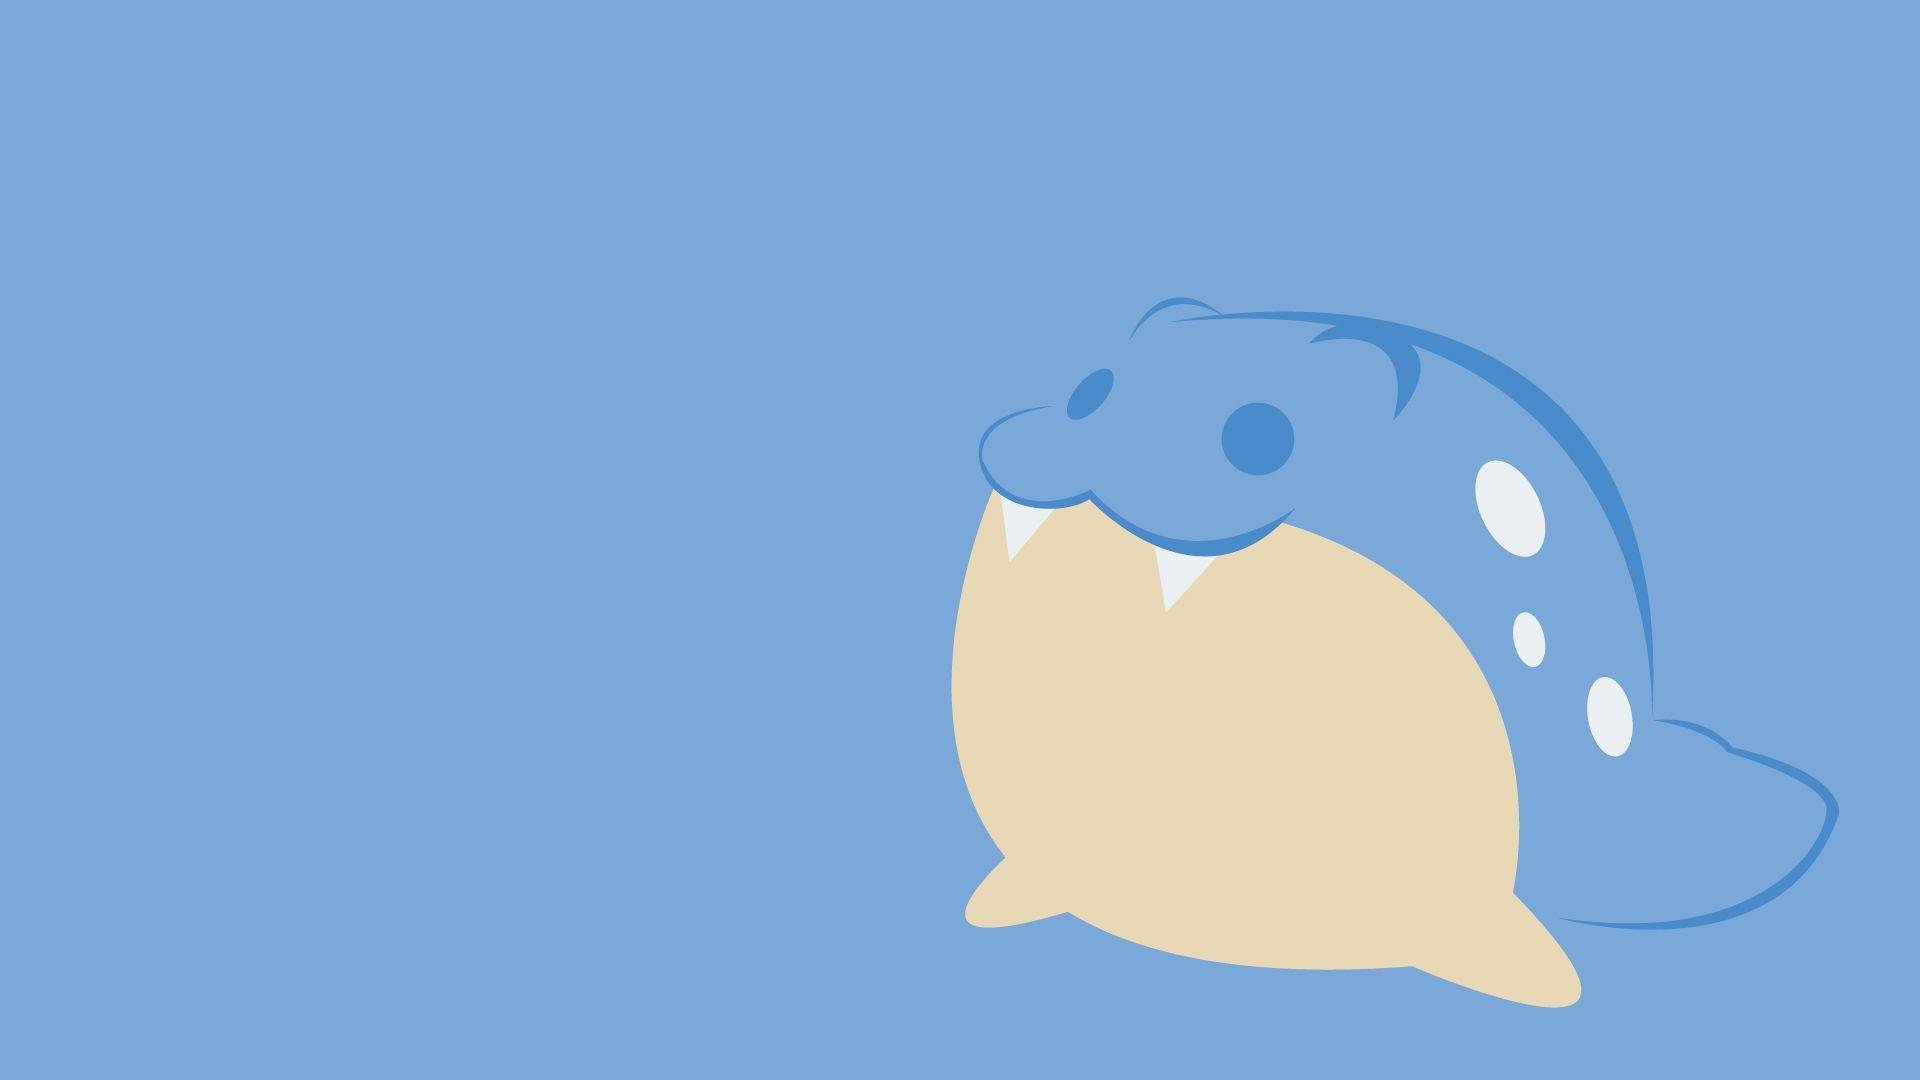 Spheal Wallpapers 48285 1920x1080 px ~ HDWallSource